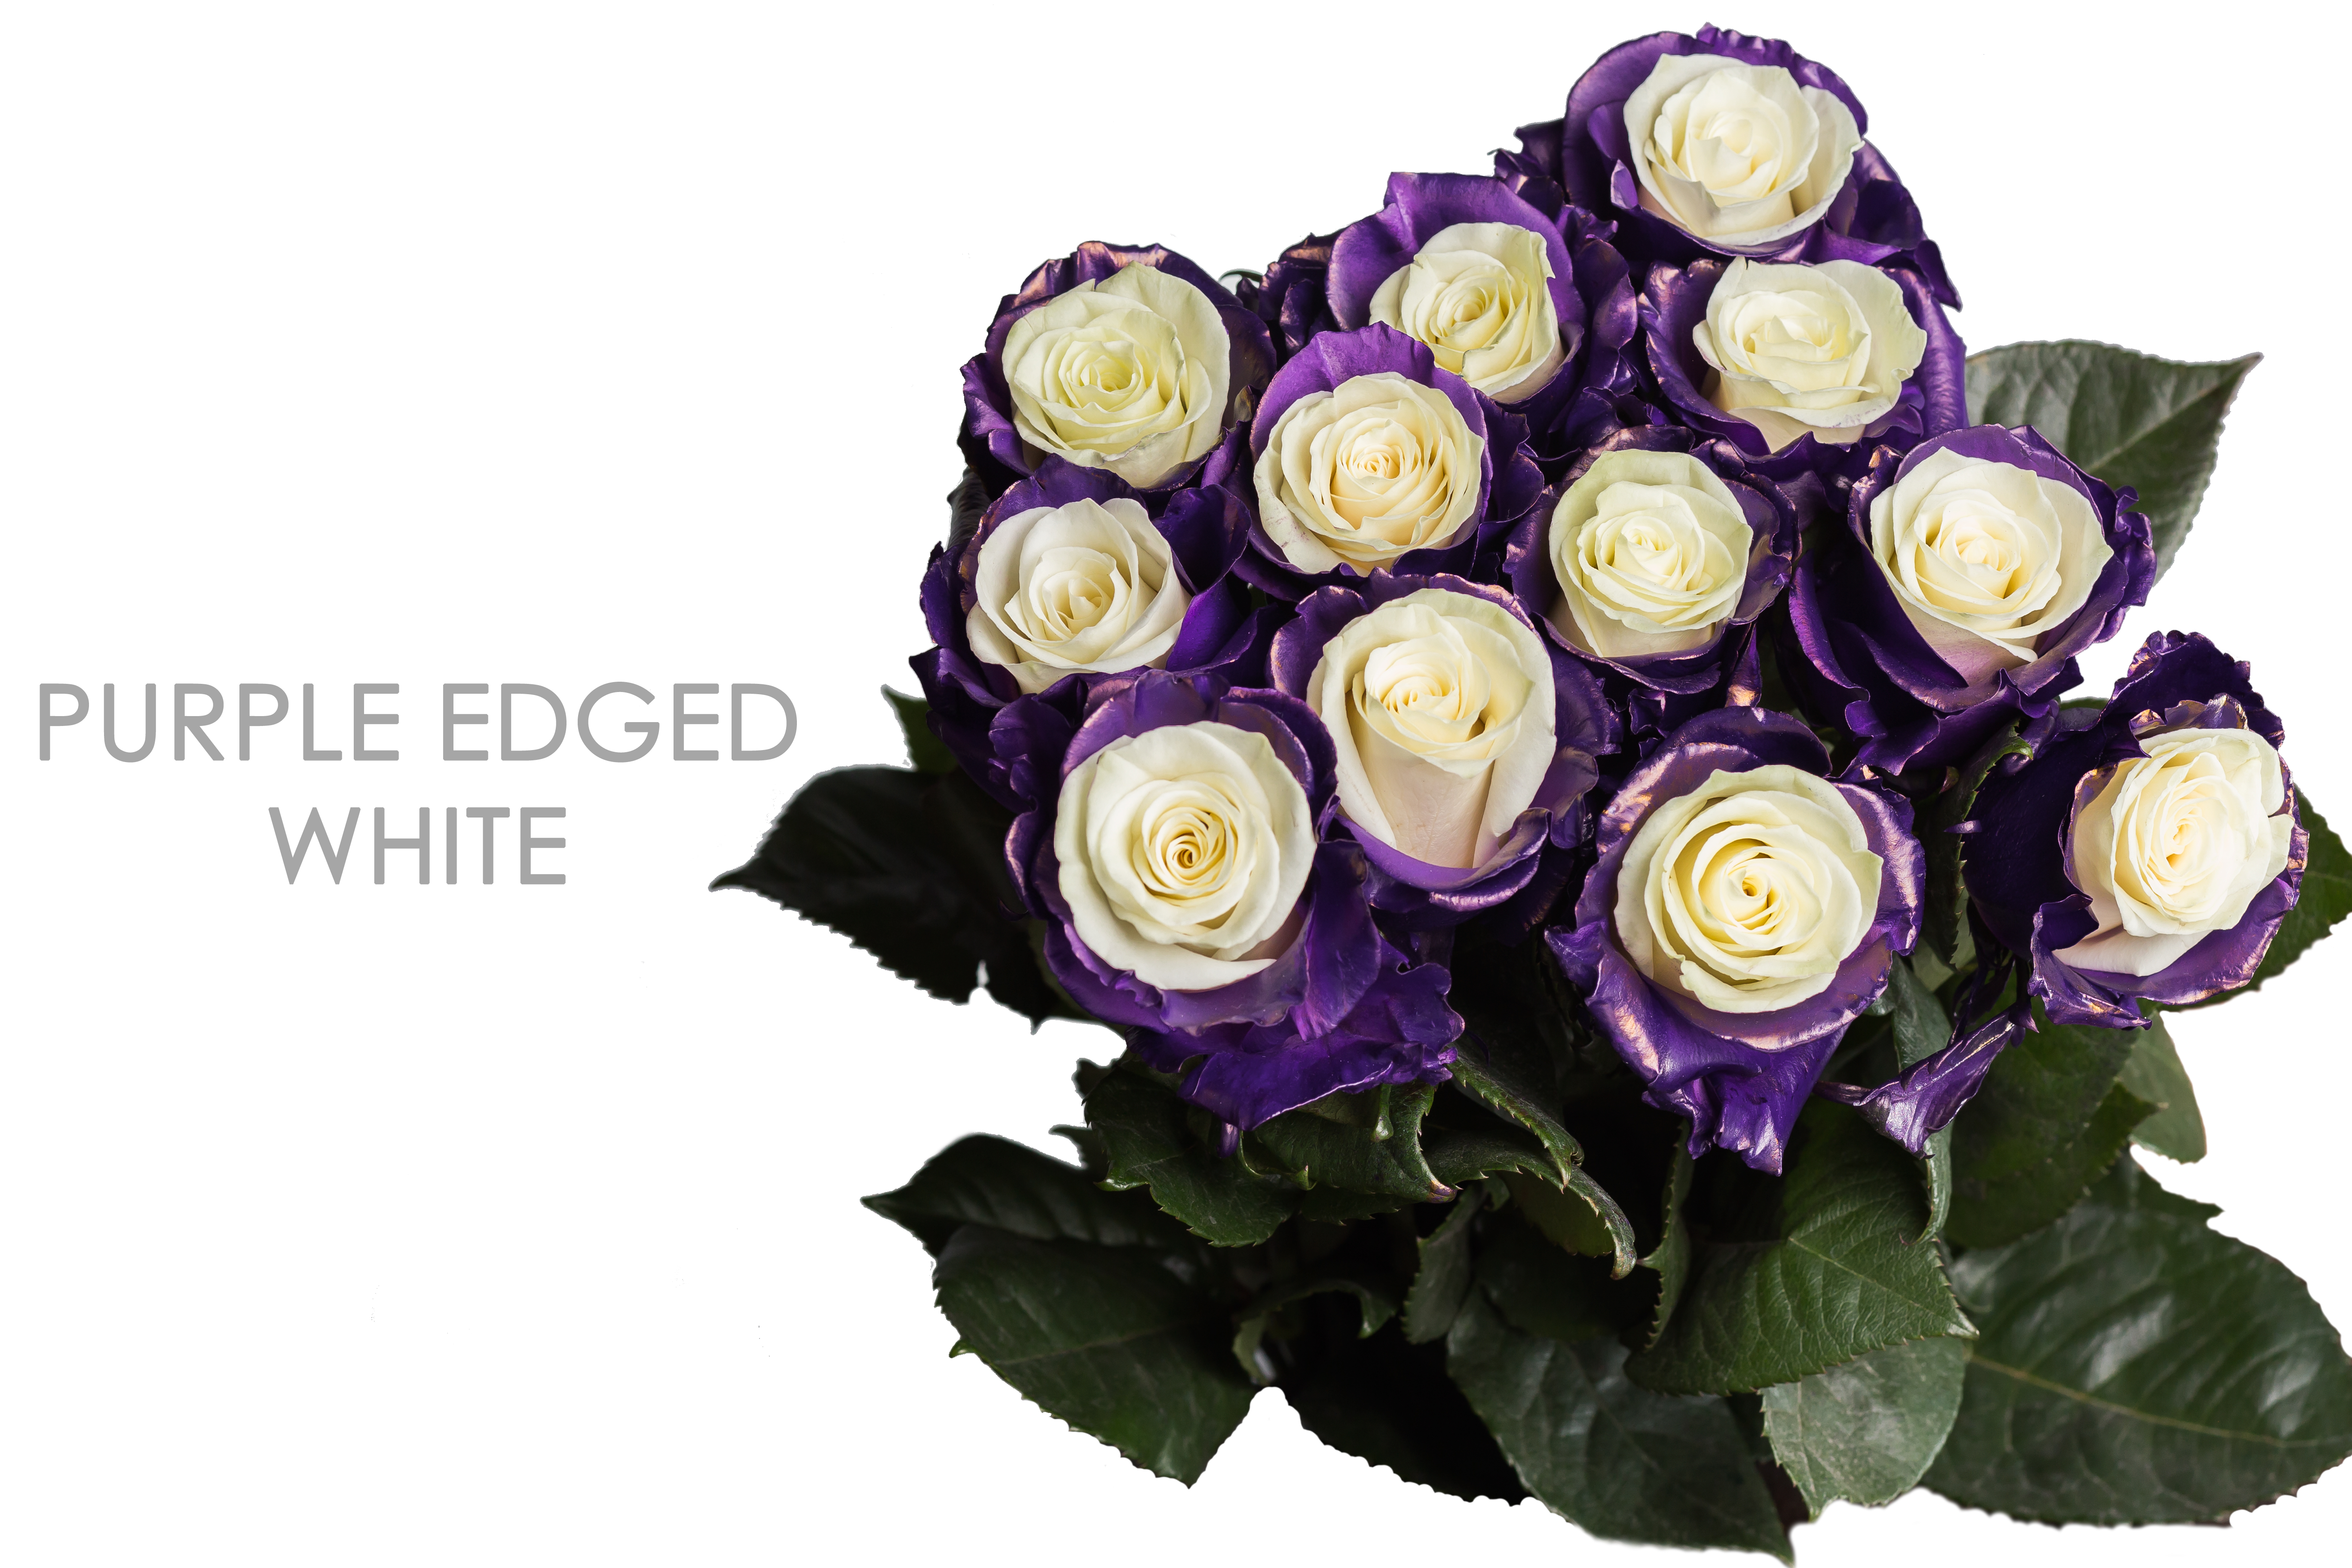 PURPLE-EDGED-WHITE-BOUQUET